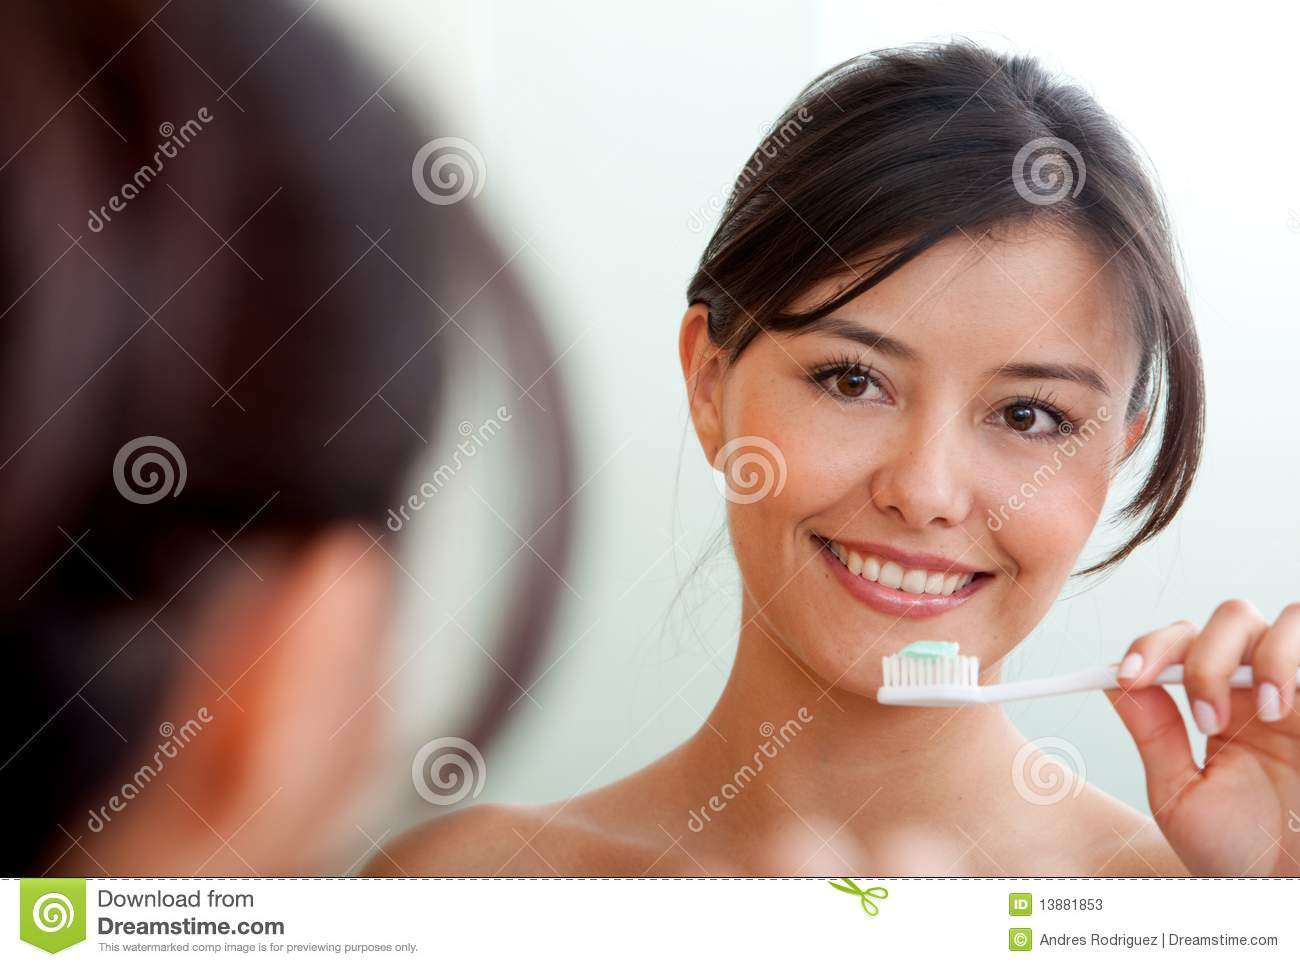 Woman Brushing Her Teeth Stock Photos - Image: 13881853